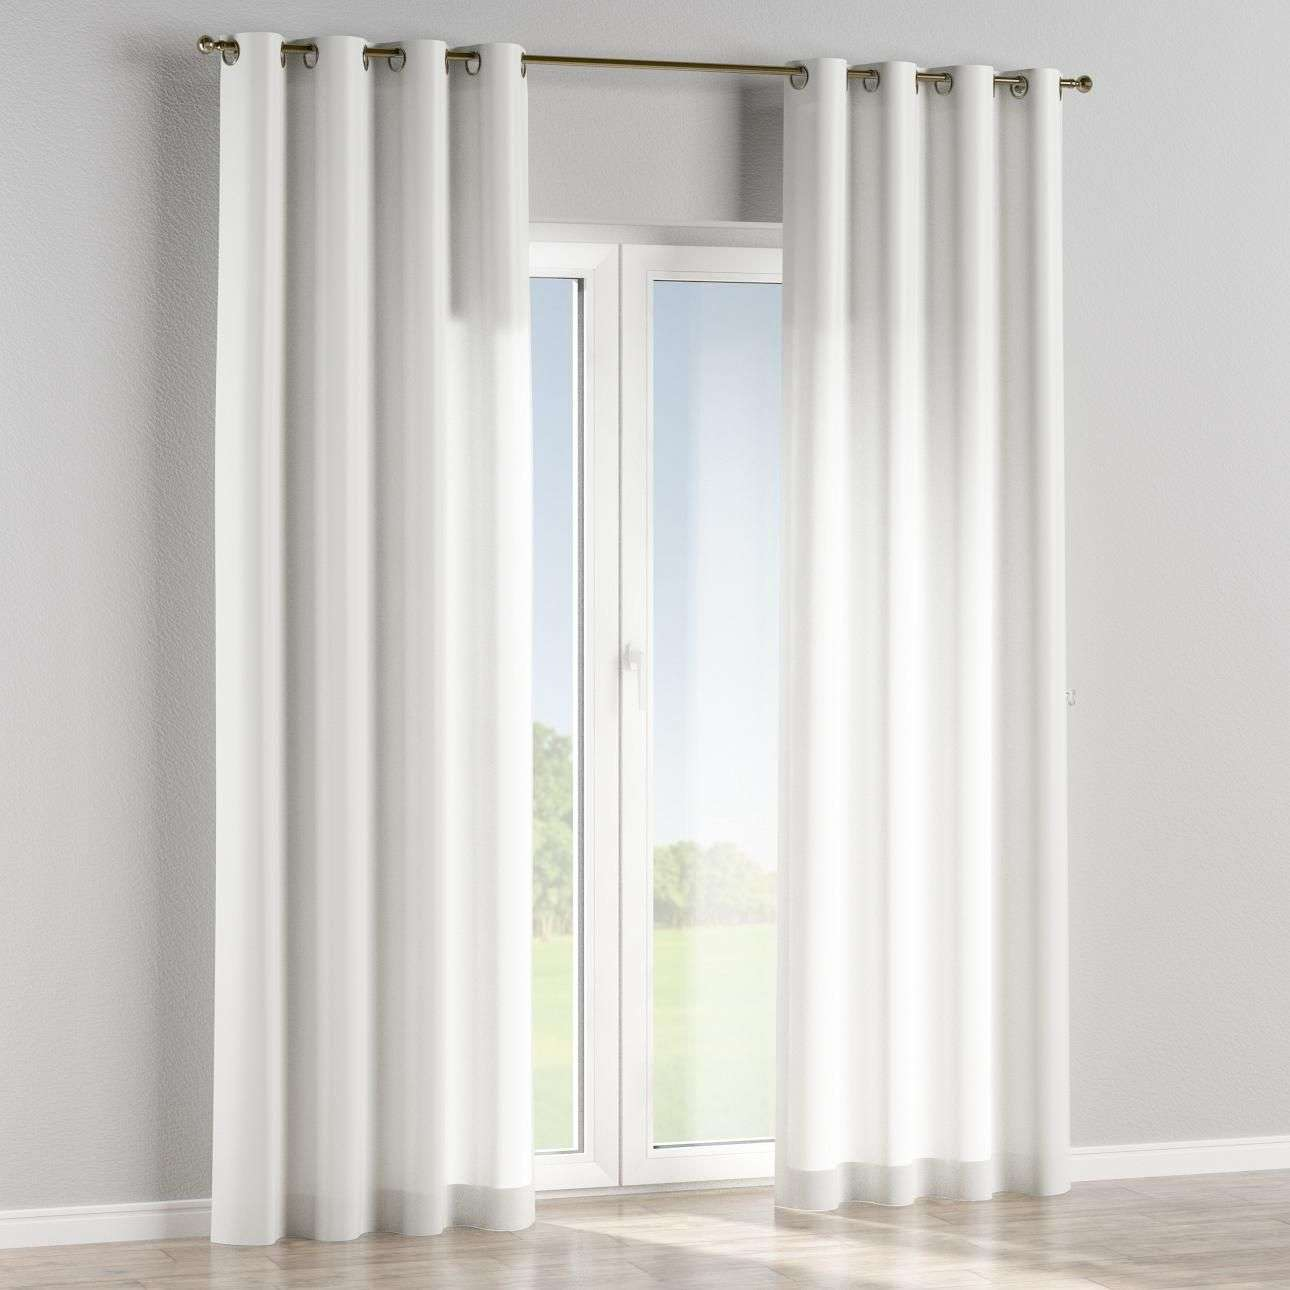 Eyelet lined curtains in collection New Art, fabric: 140-21